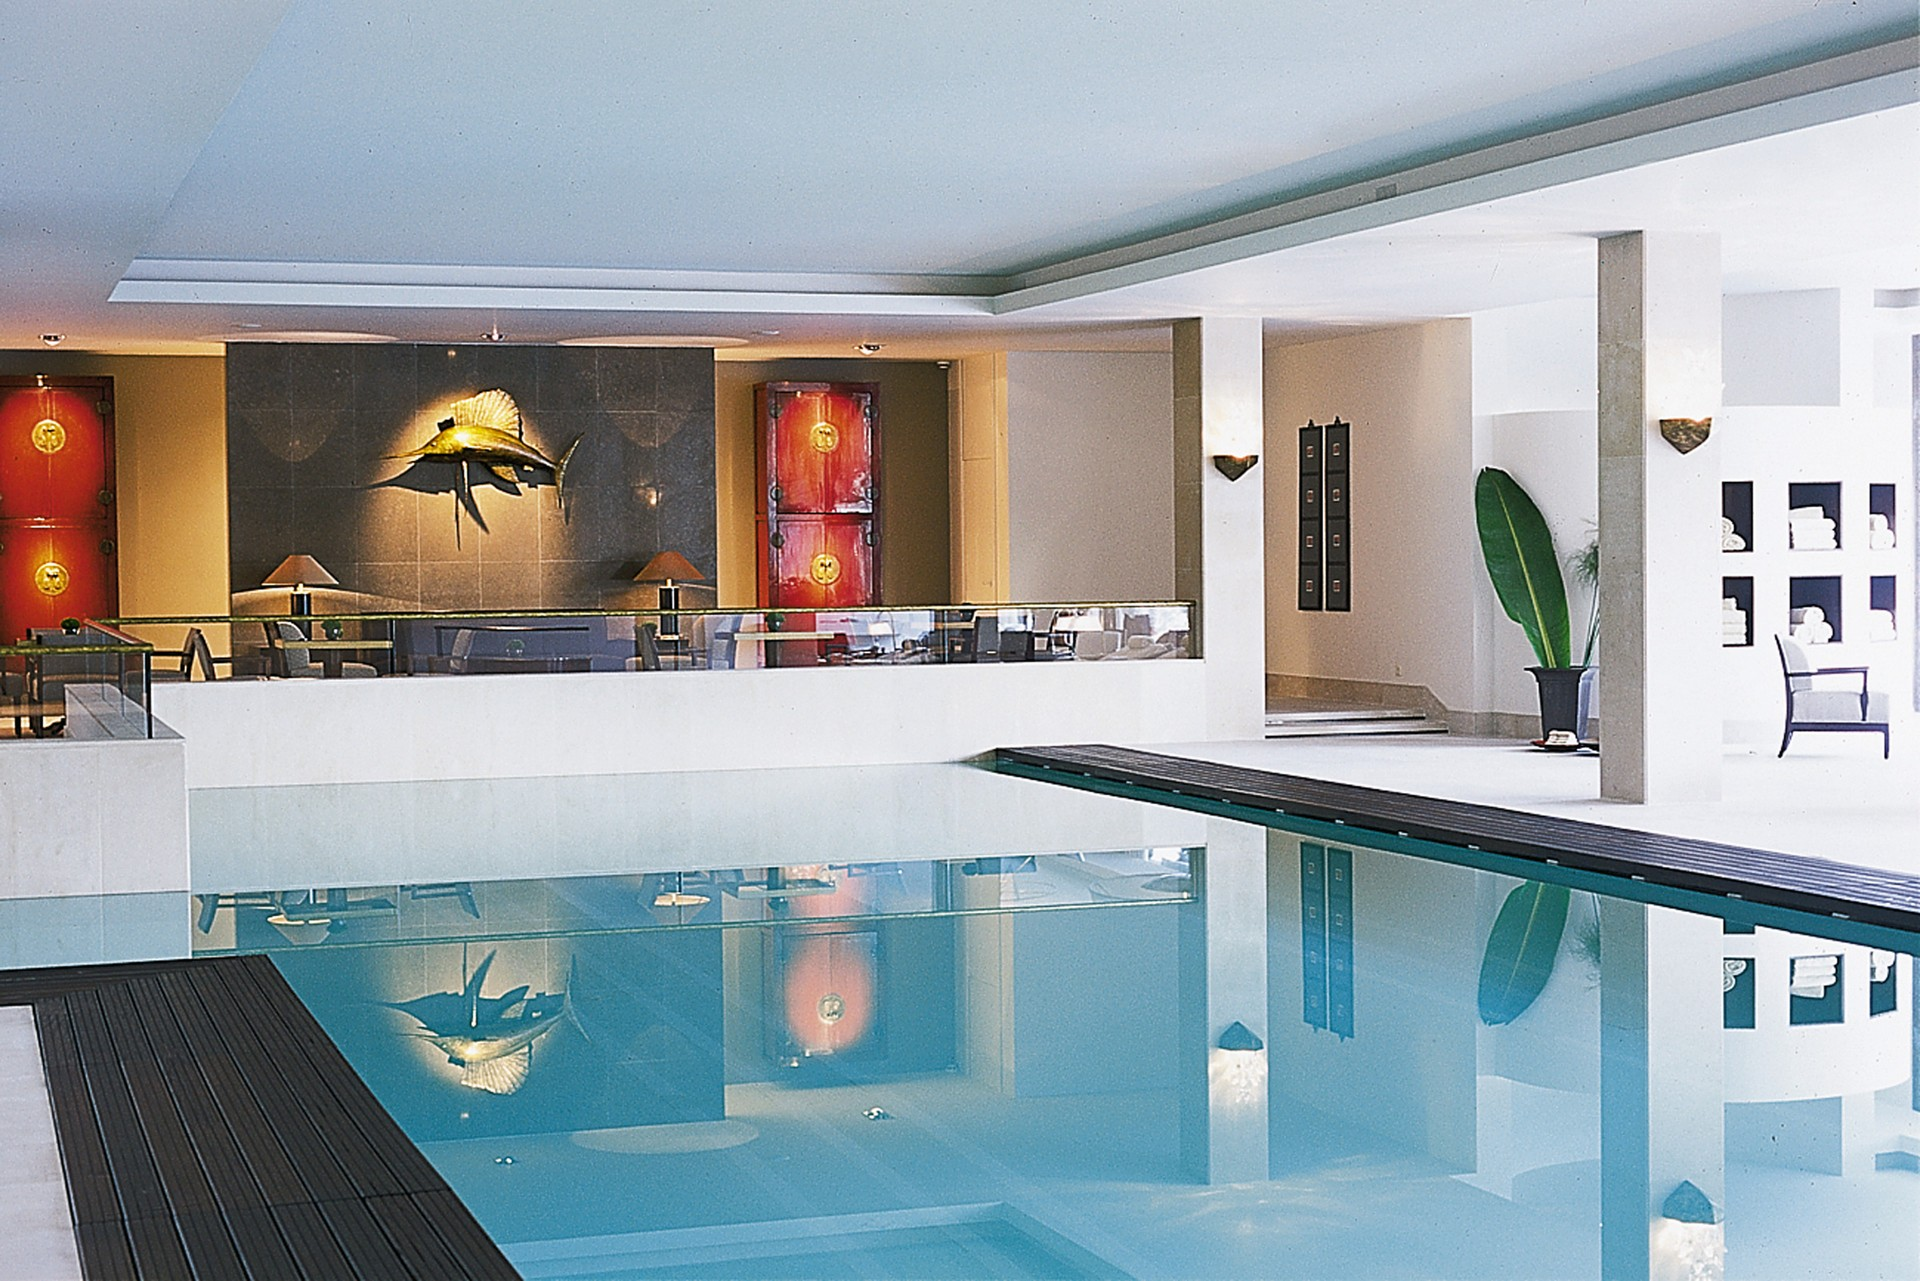 Best spas in Portugal: Ritz Spa what to do in lisbon What To Do In Lisbon: 48 Hours In The Capital Best spas in Portugal 2